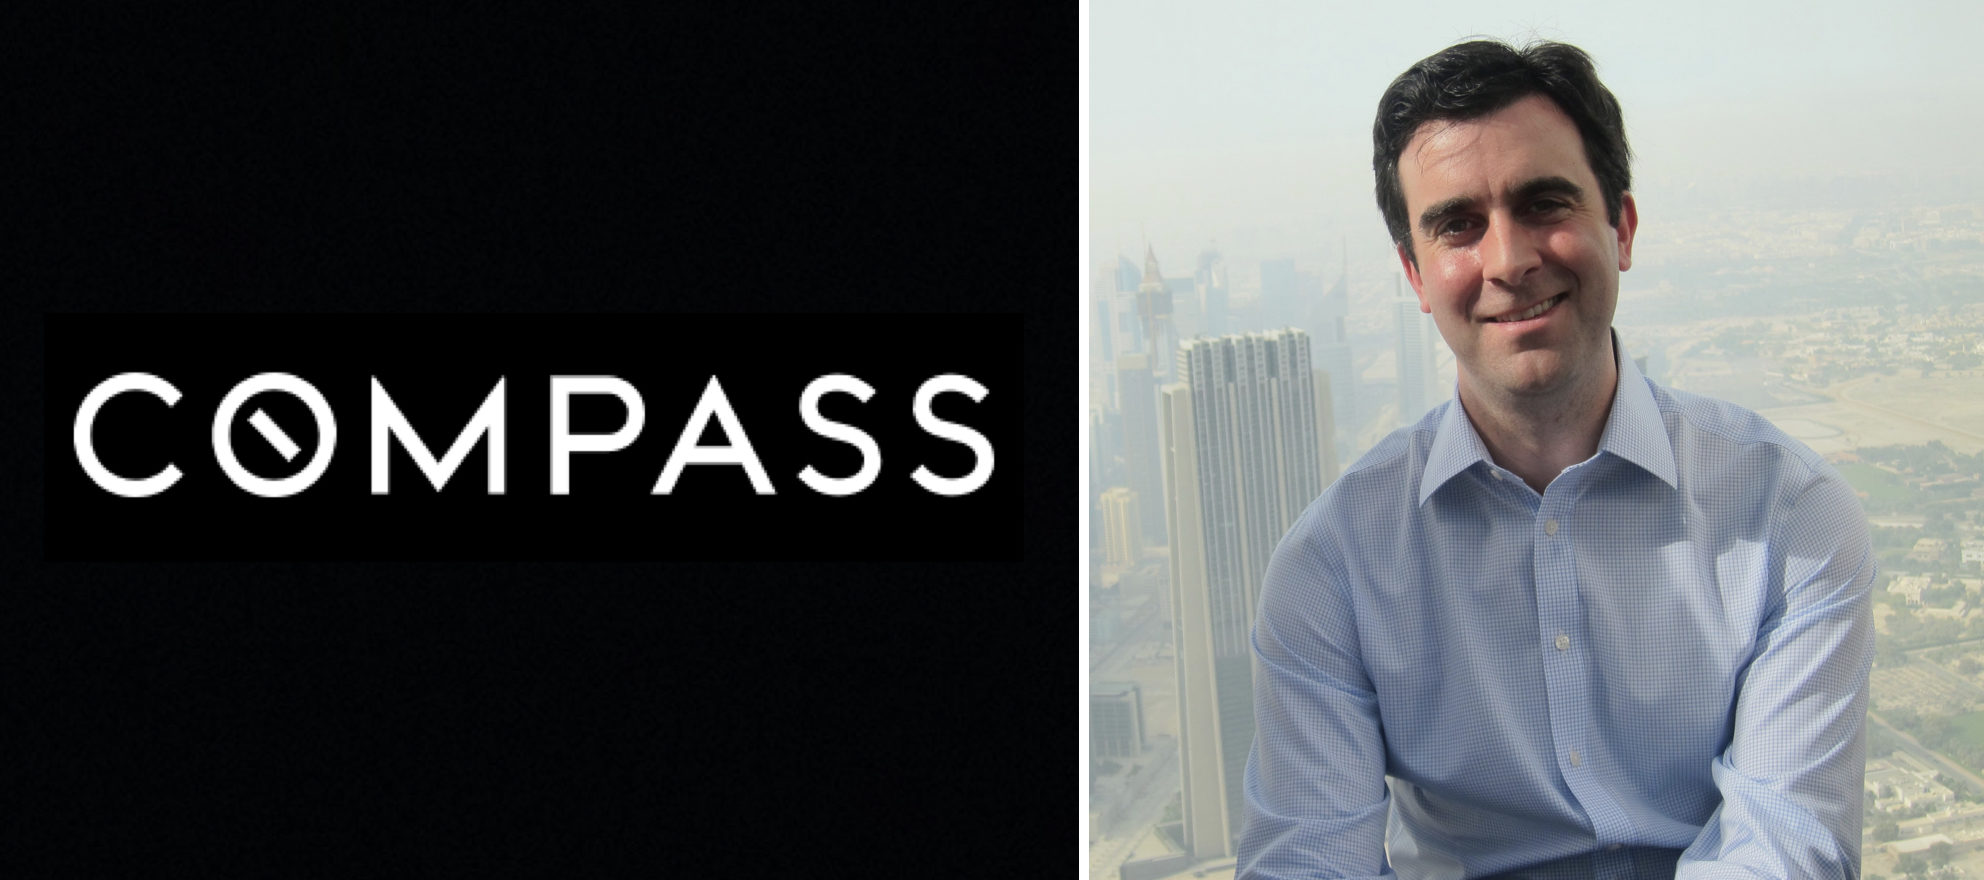 Compass' head of comms to depart after 9 months